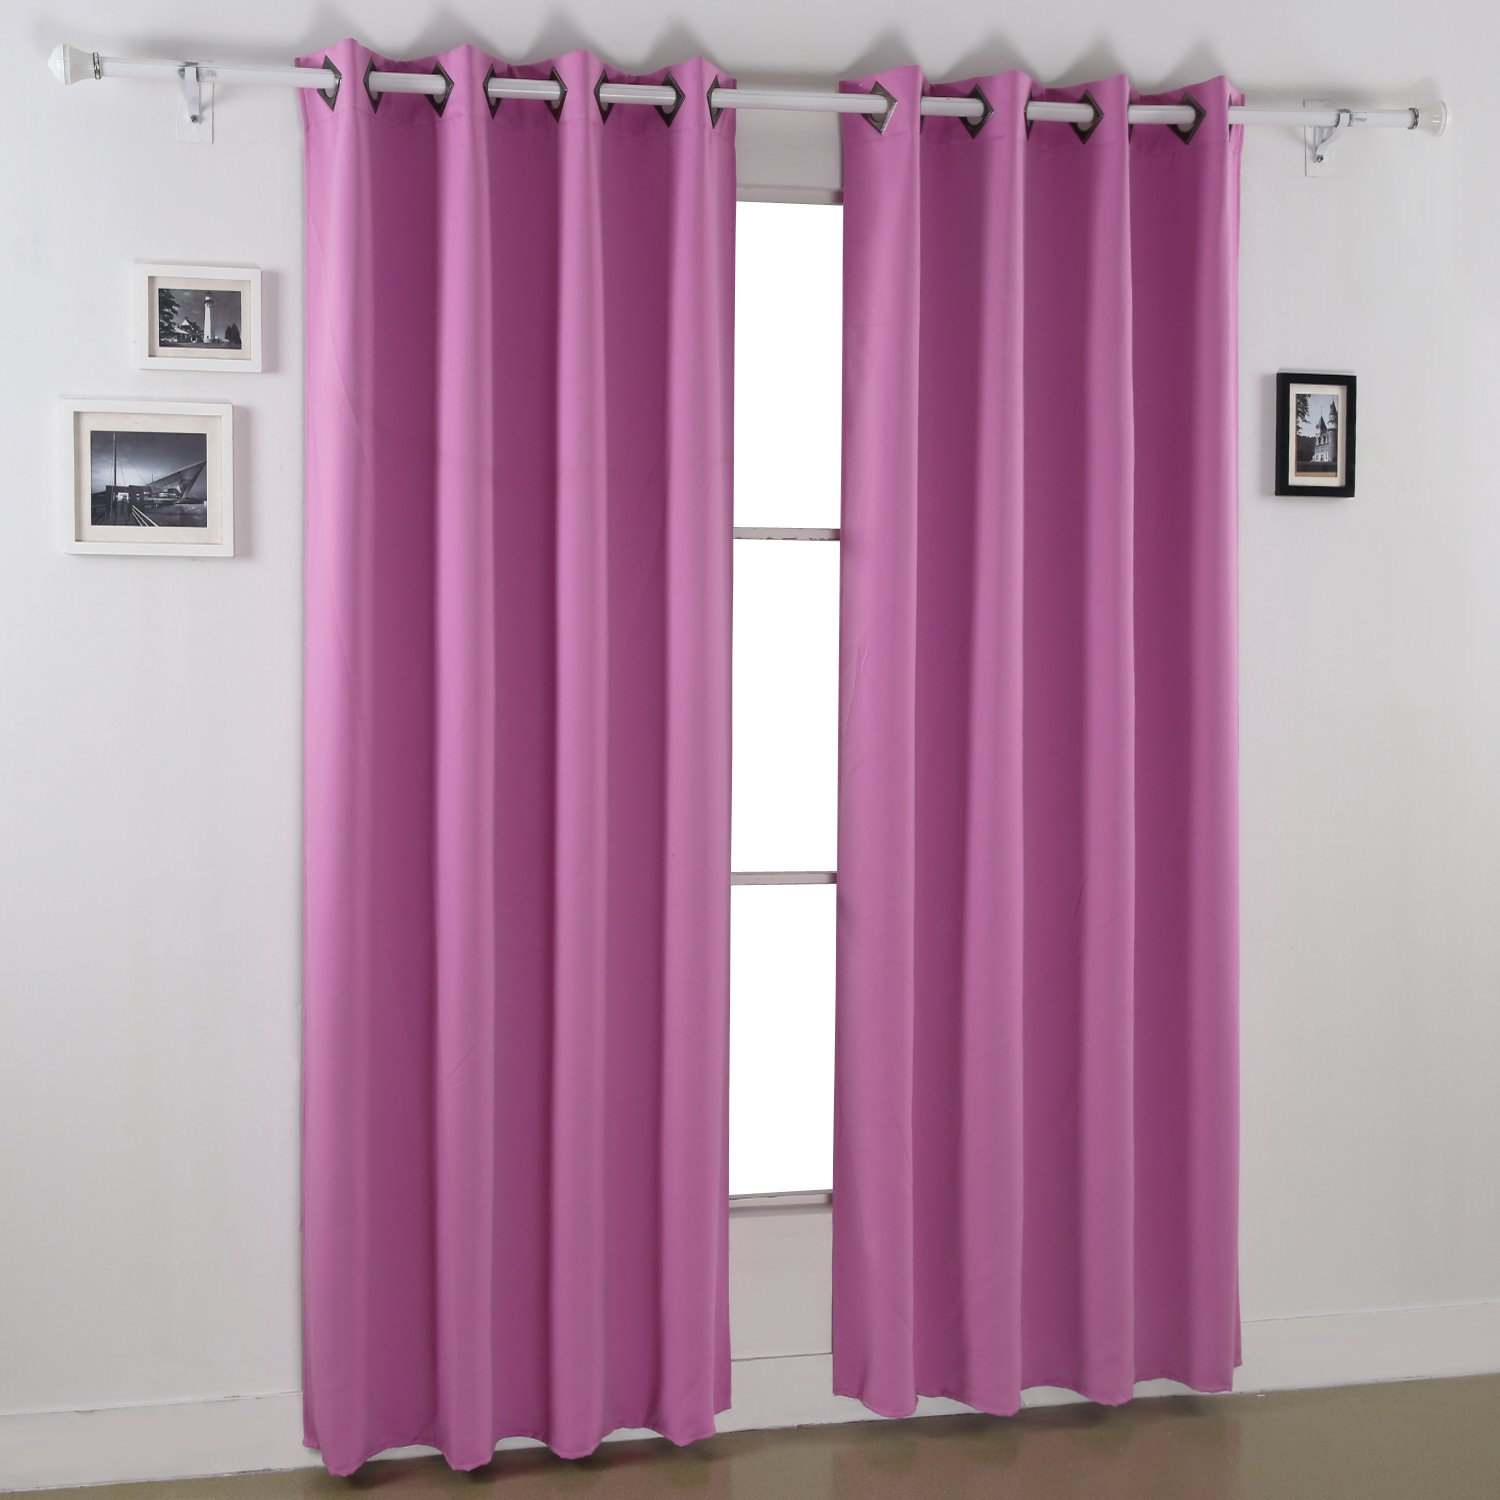 Fuchsia Pink Deconovo Blackout Curtains Thermal Insulated Curtains Grommet Top Room Darkening Shades Curtains